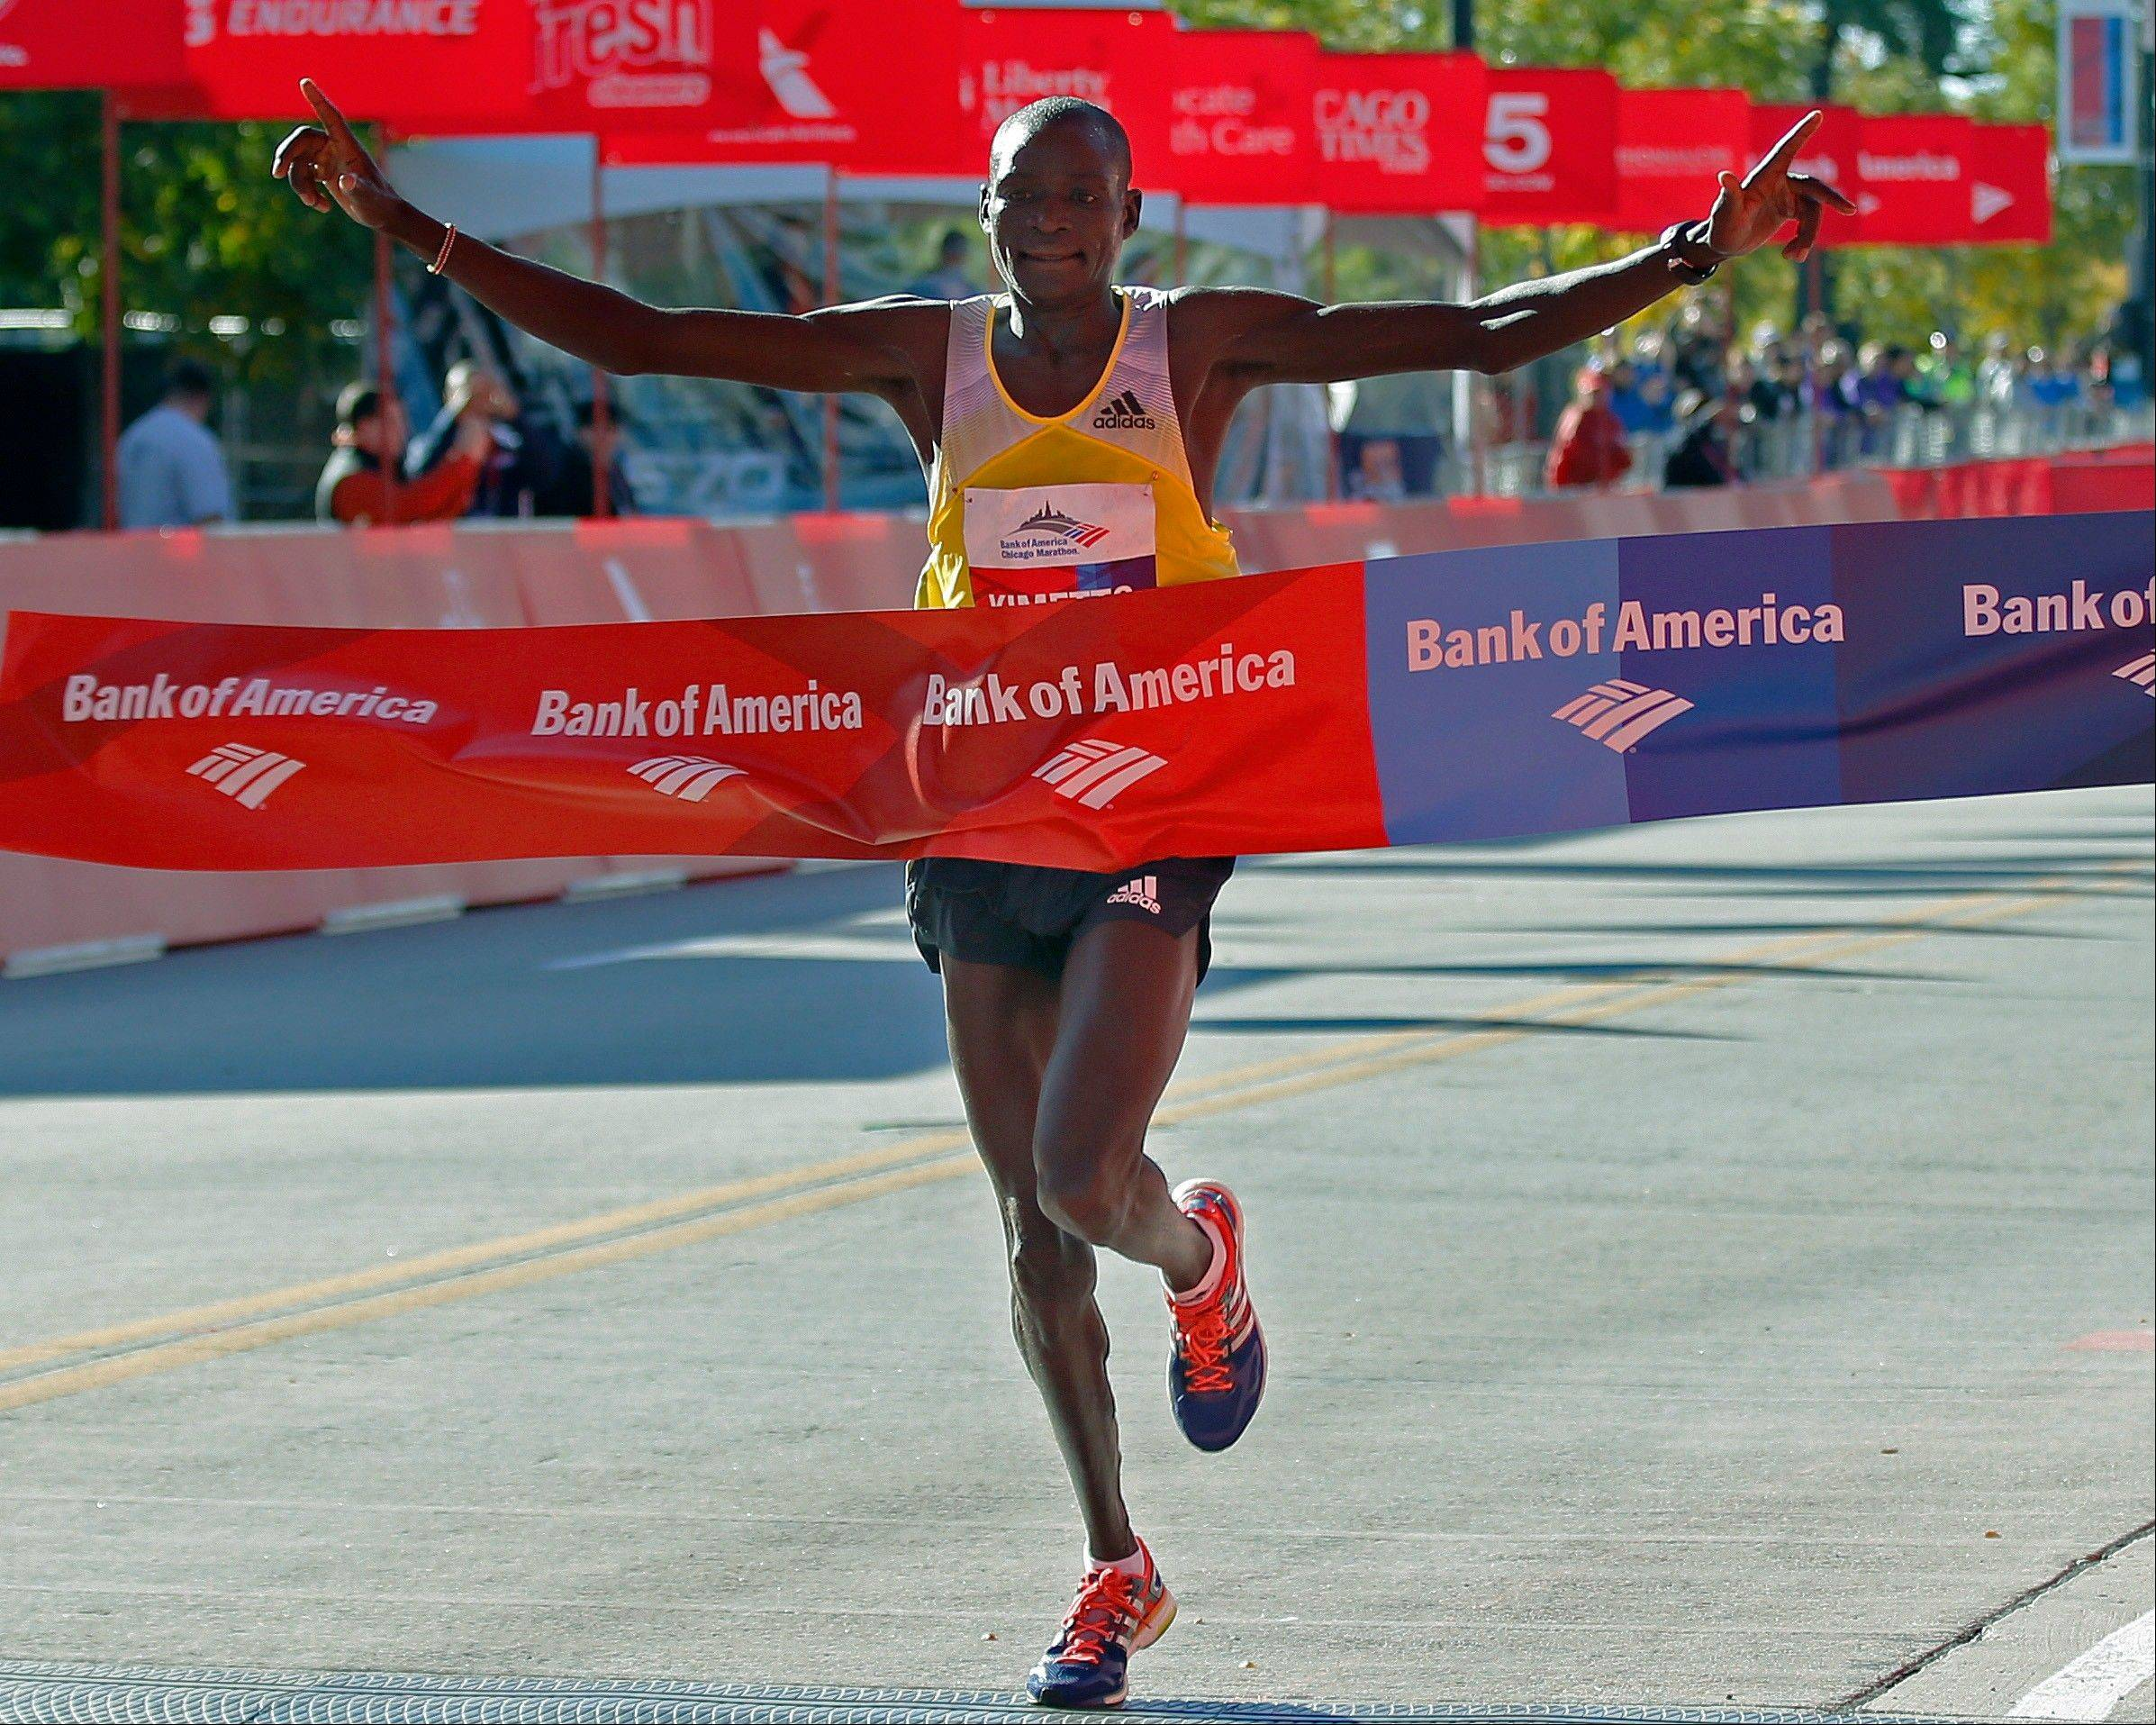 Dennis Kimetto of Kenya crosses the finish line to win the Chicago Marathon on Sunday, Oct. 13, 2013, in Chicago.